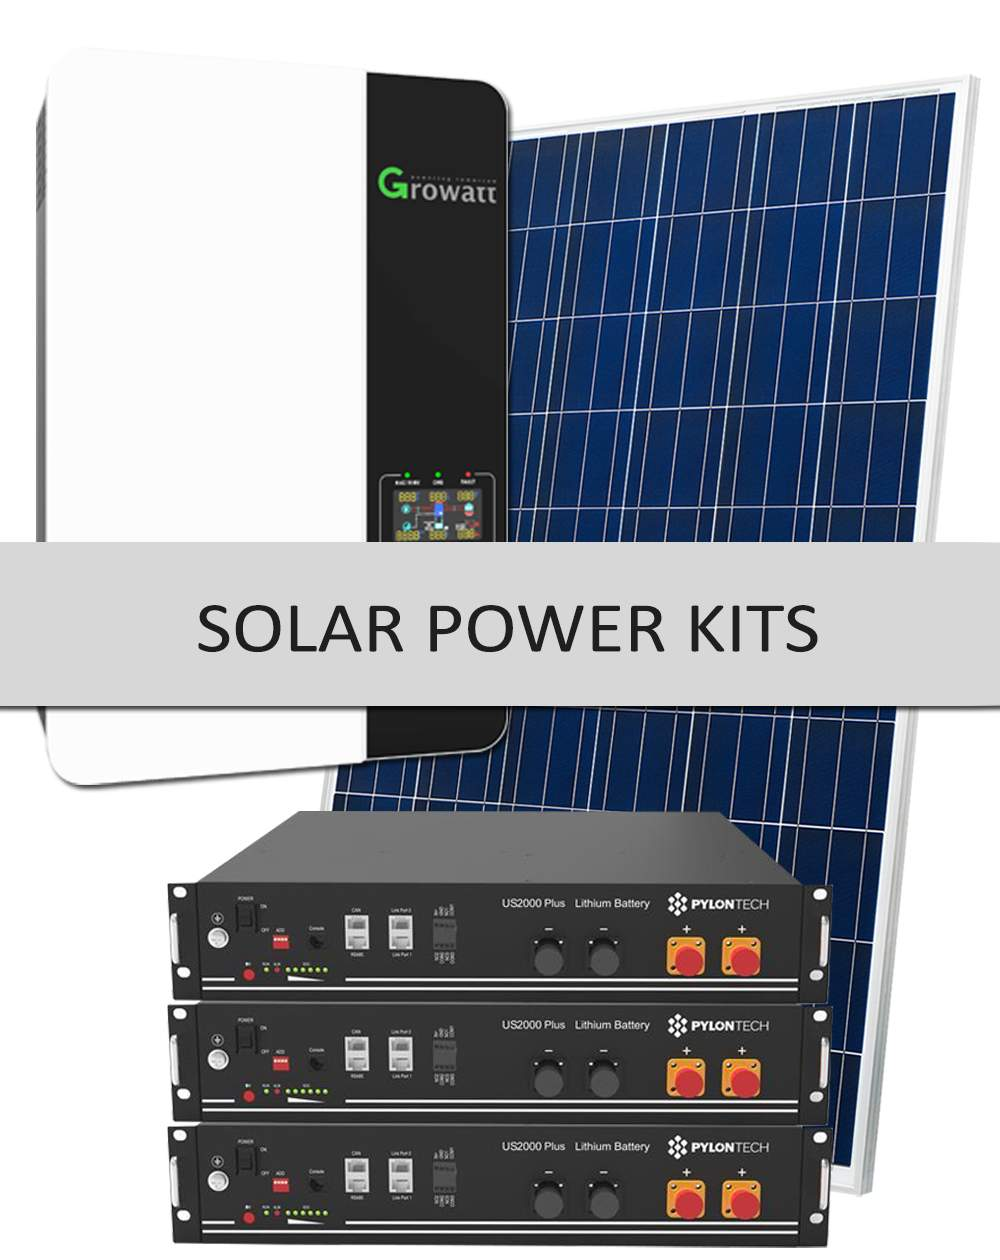 Ready to go PV solar kits, Shop solar panels, complete solar system kits, components & parts for Off-Grid, Grid-Tie, and custom kits in South Africa